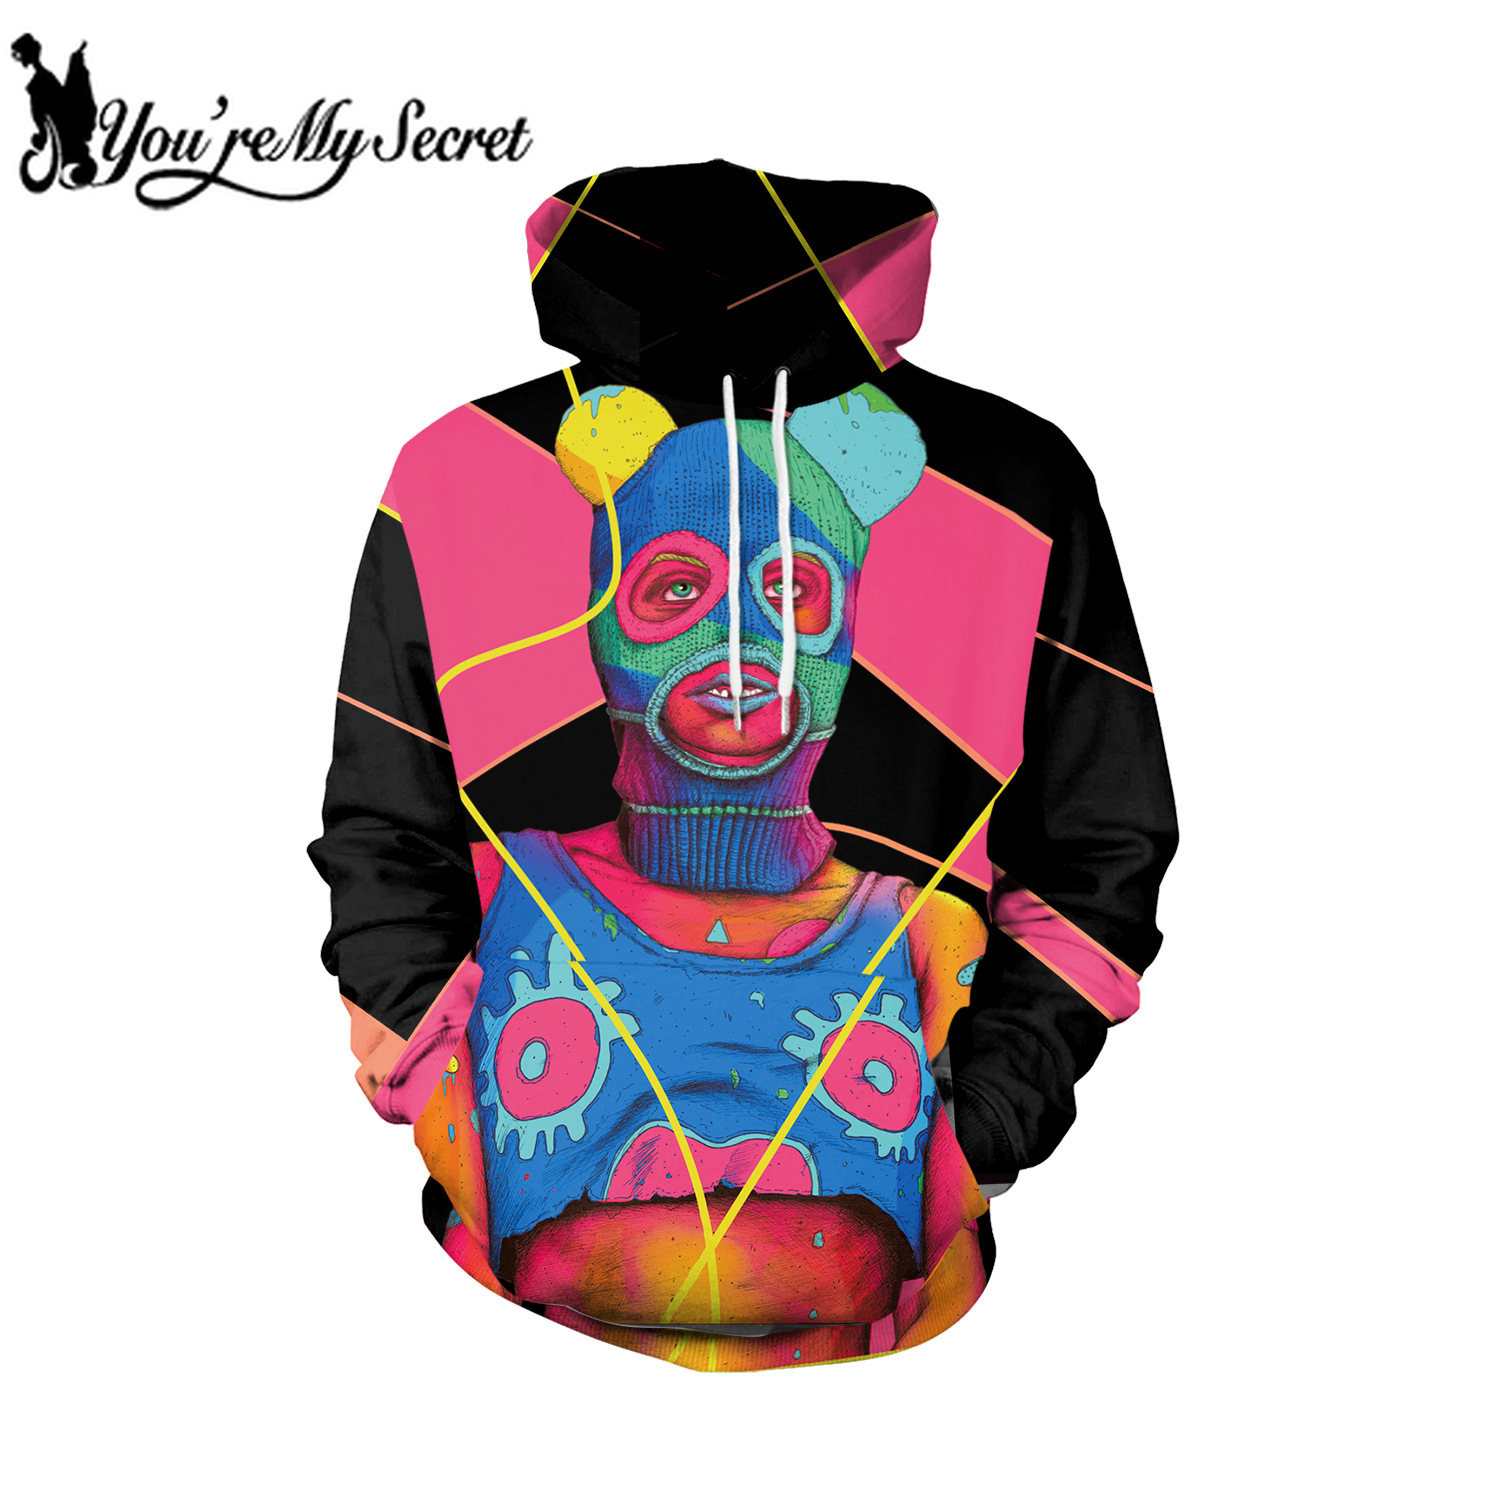 [You're My Secret] 2019 High Street Hip Hop Colorful People Digital Scrawl Unisex Hooded Sweatshirt Women's Sweatshirt with Hood